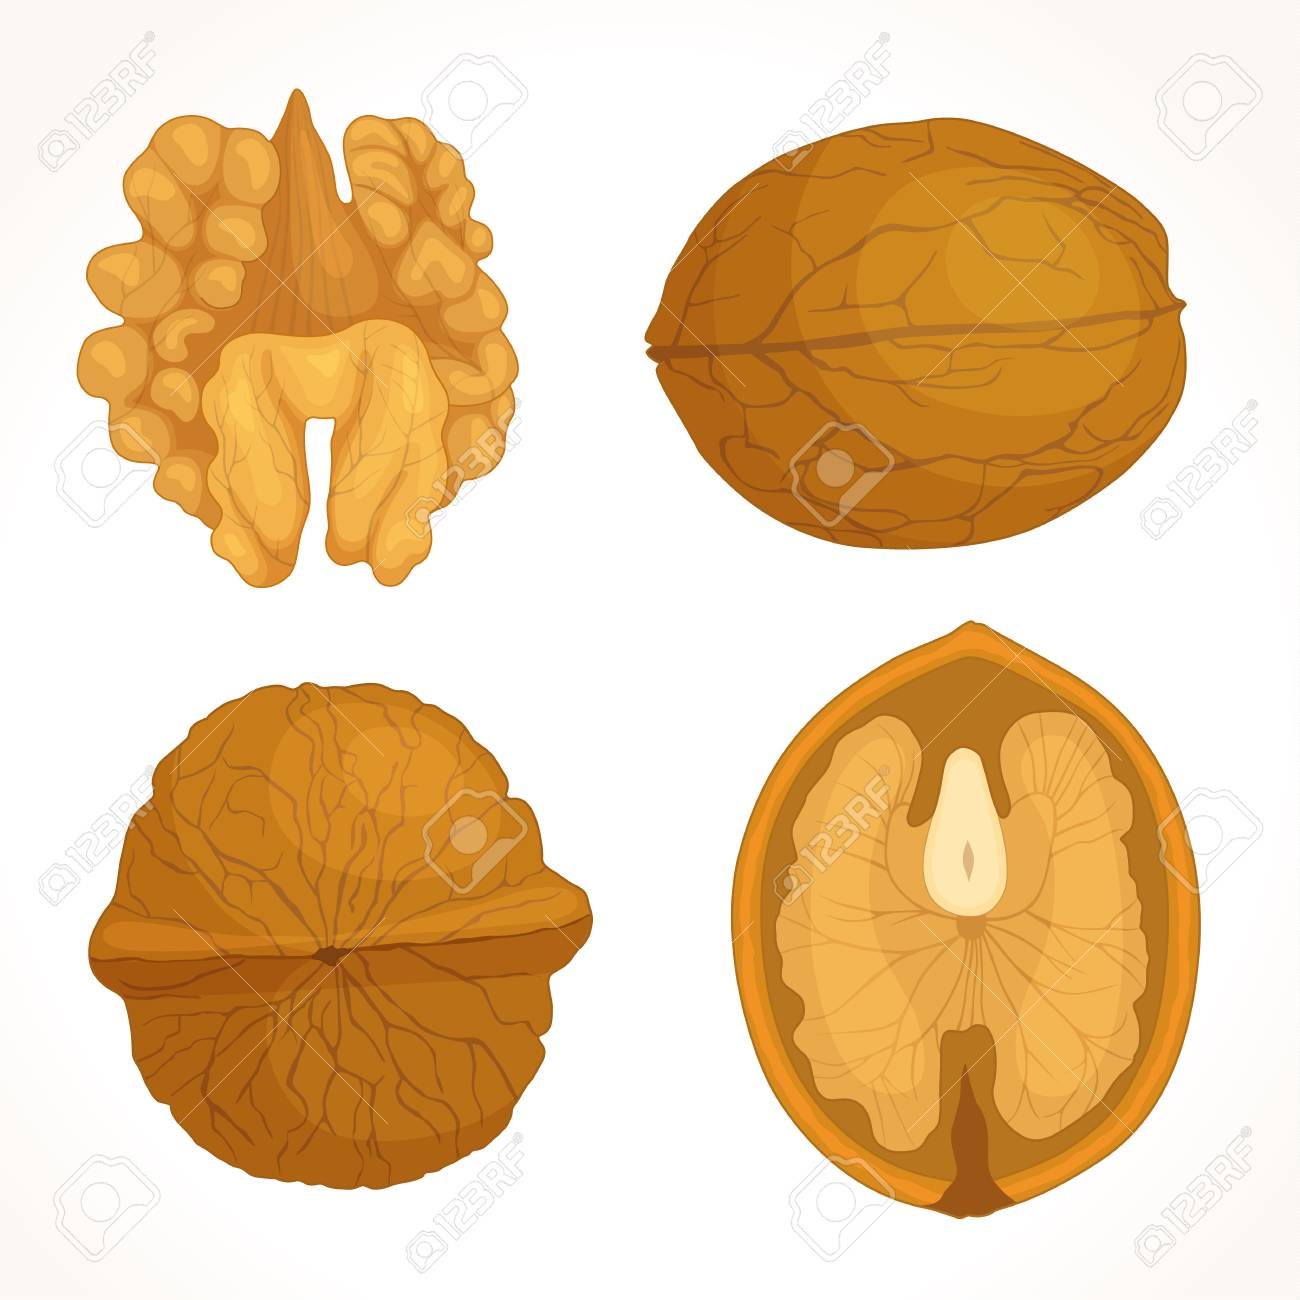 Walnut vector. Half, whole, shell and core of walnut. Detailed illustration in the cartoon style. - 91268000